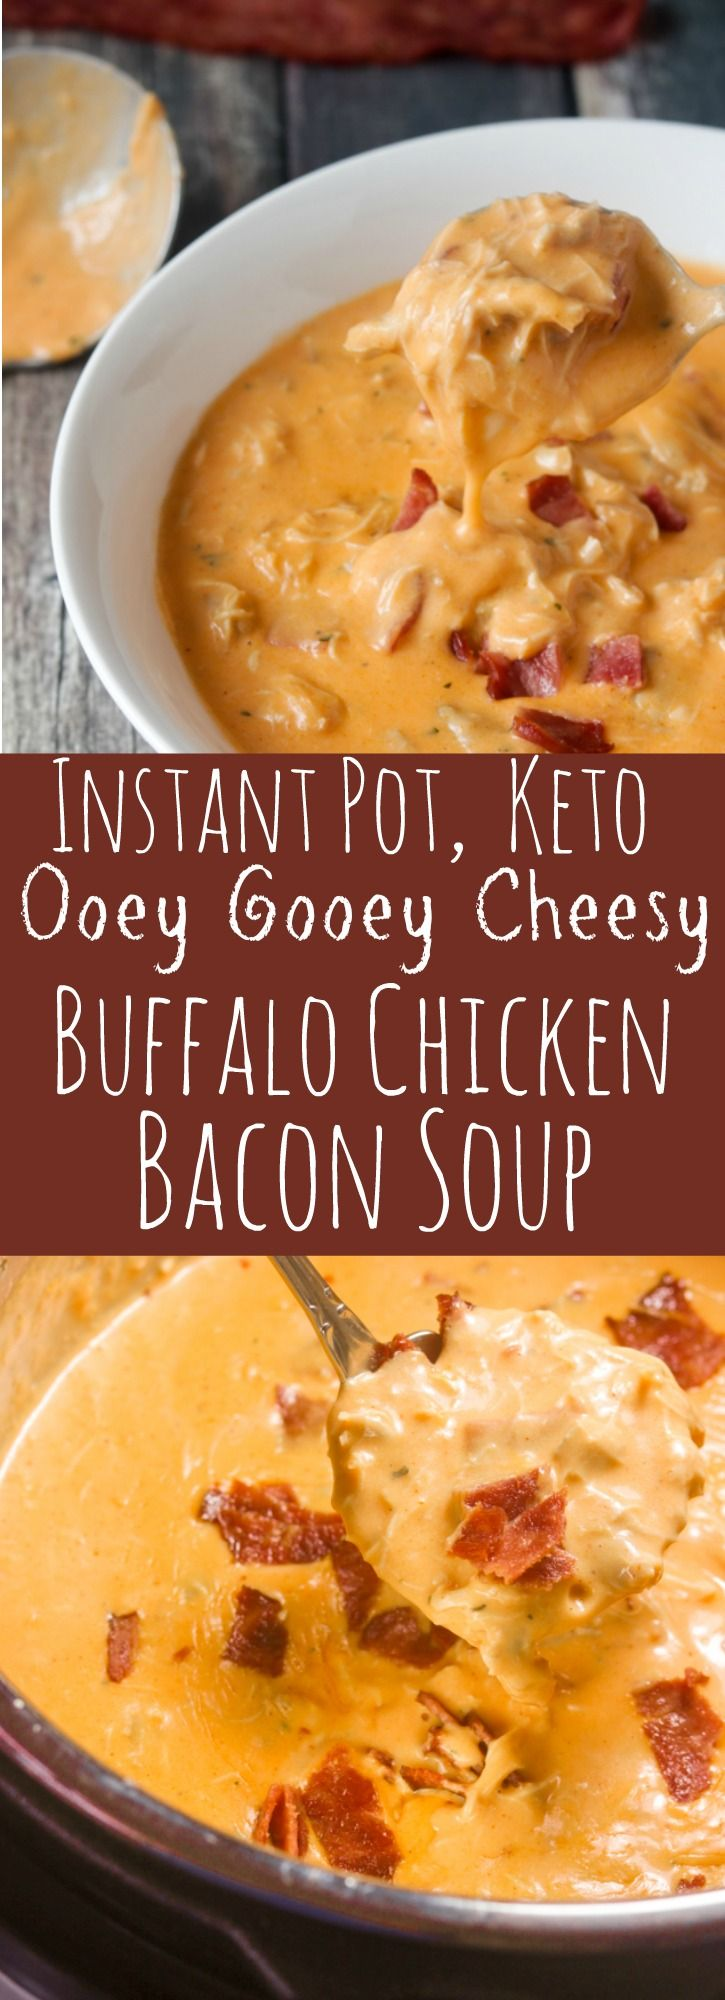 Instant Pot Keto Buffalo Chicken Bacon Soup, Low Carb • Farmstead Chic #lowcarbeating